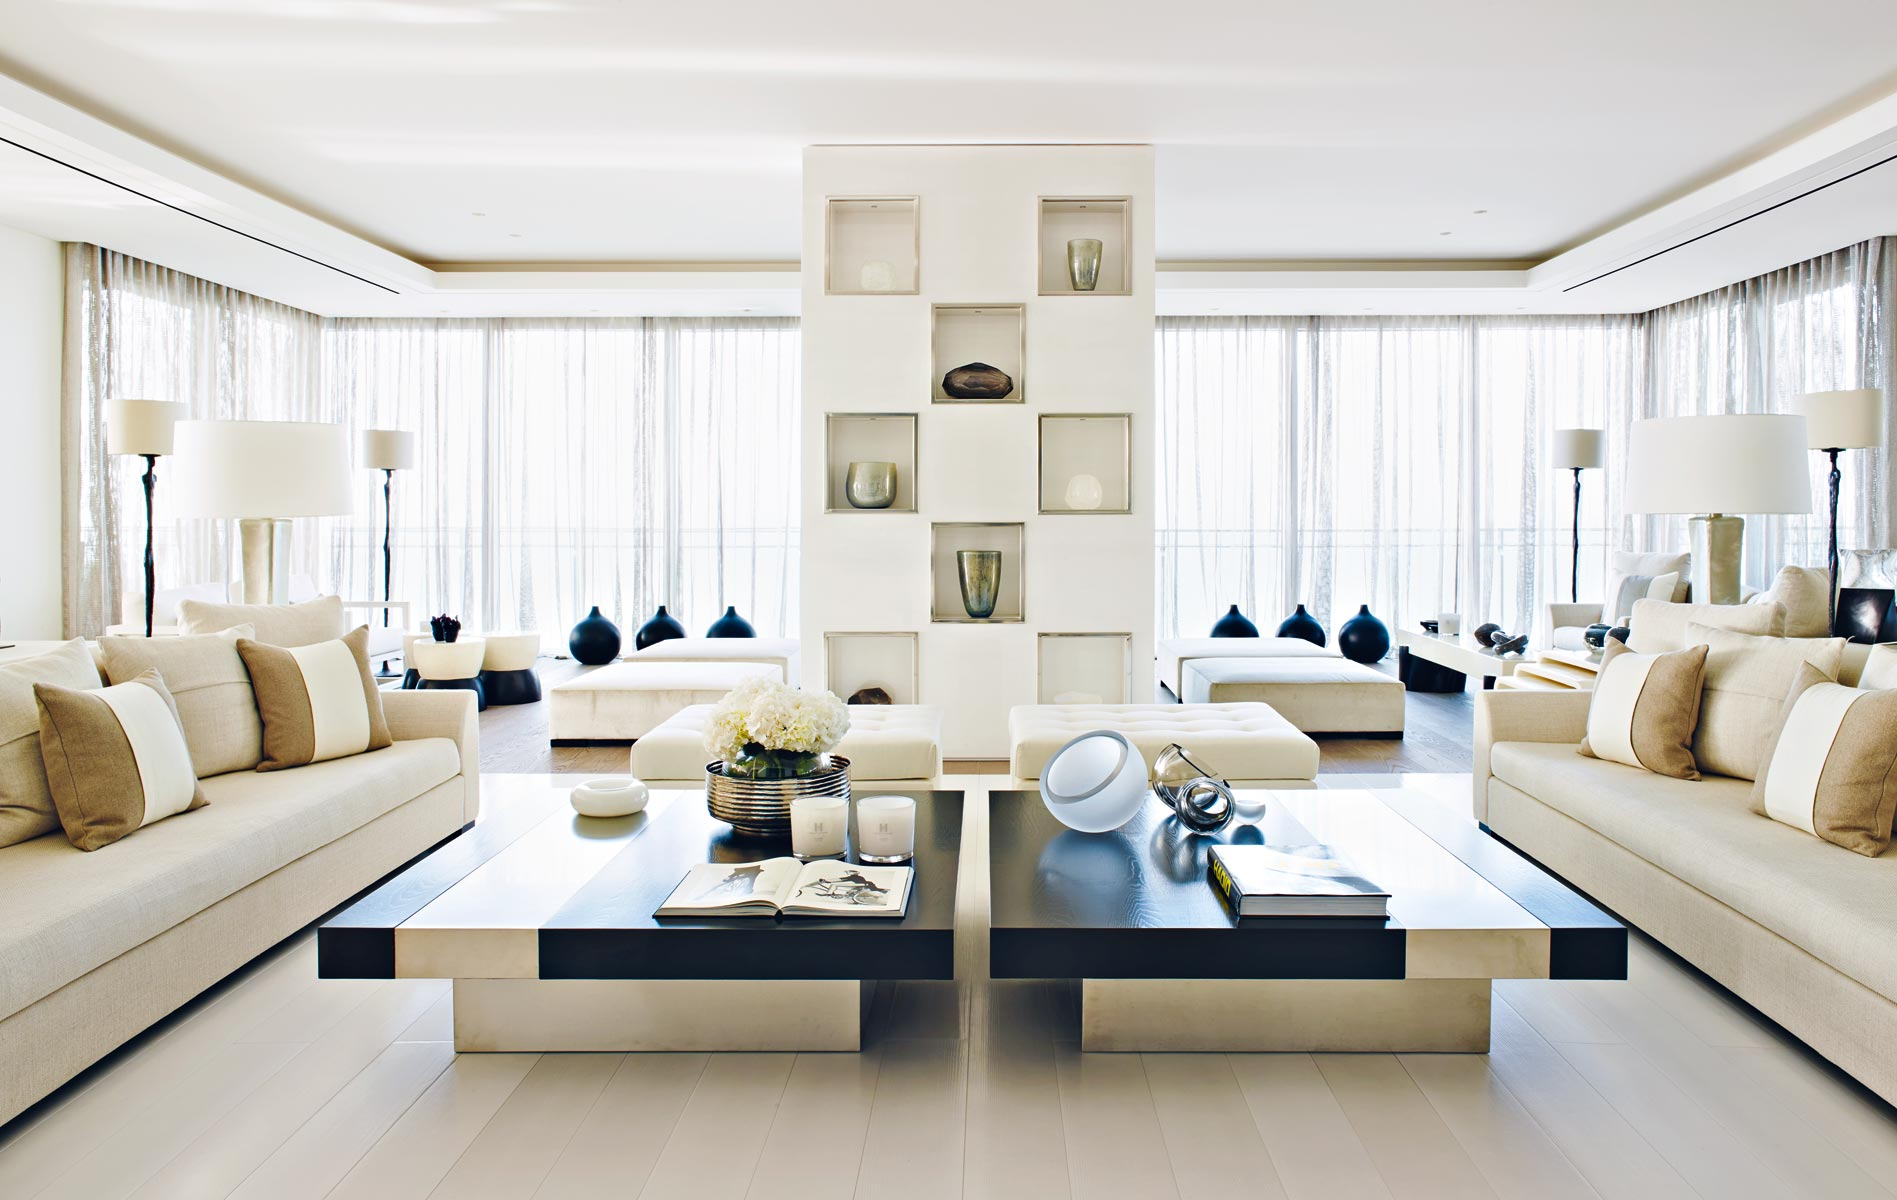 Top 10 kelly hoppen design ideas The most beautiful interior design house